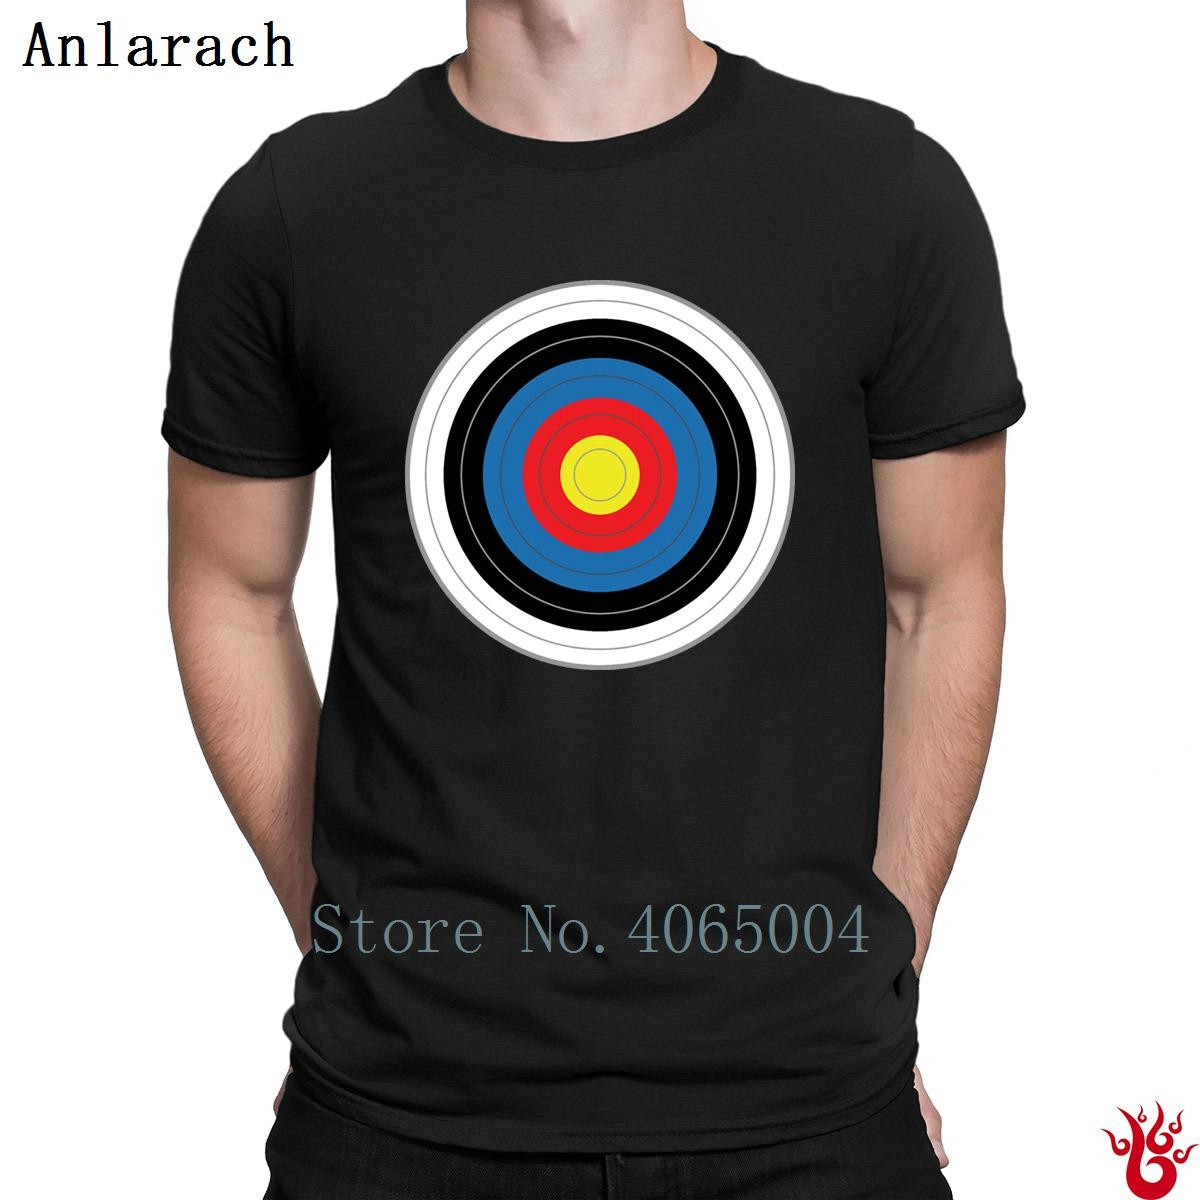 0183c49e8e Round Target T Shirt New Fashion Trend Character Leisure Men Tshirt Summer  Hiphop Tops O Neck Gift Short Sleeve Men Shirt Shirt Designer From  Dzuprighth